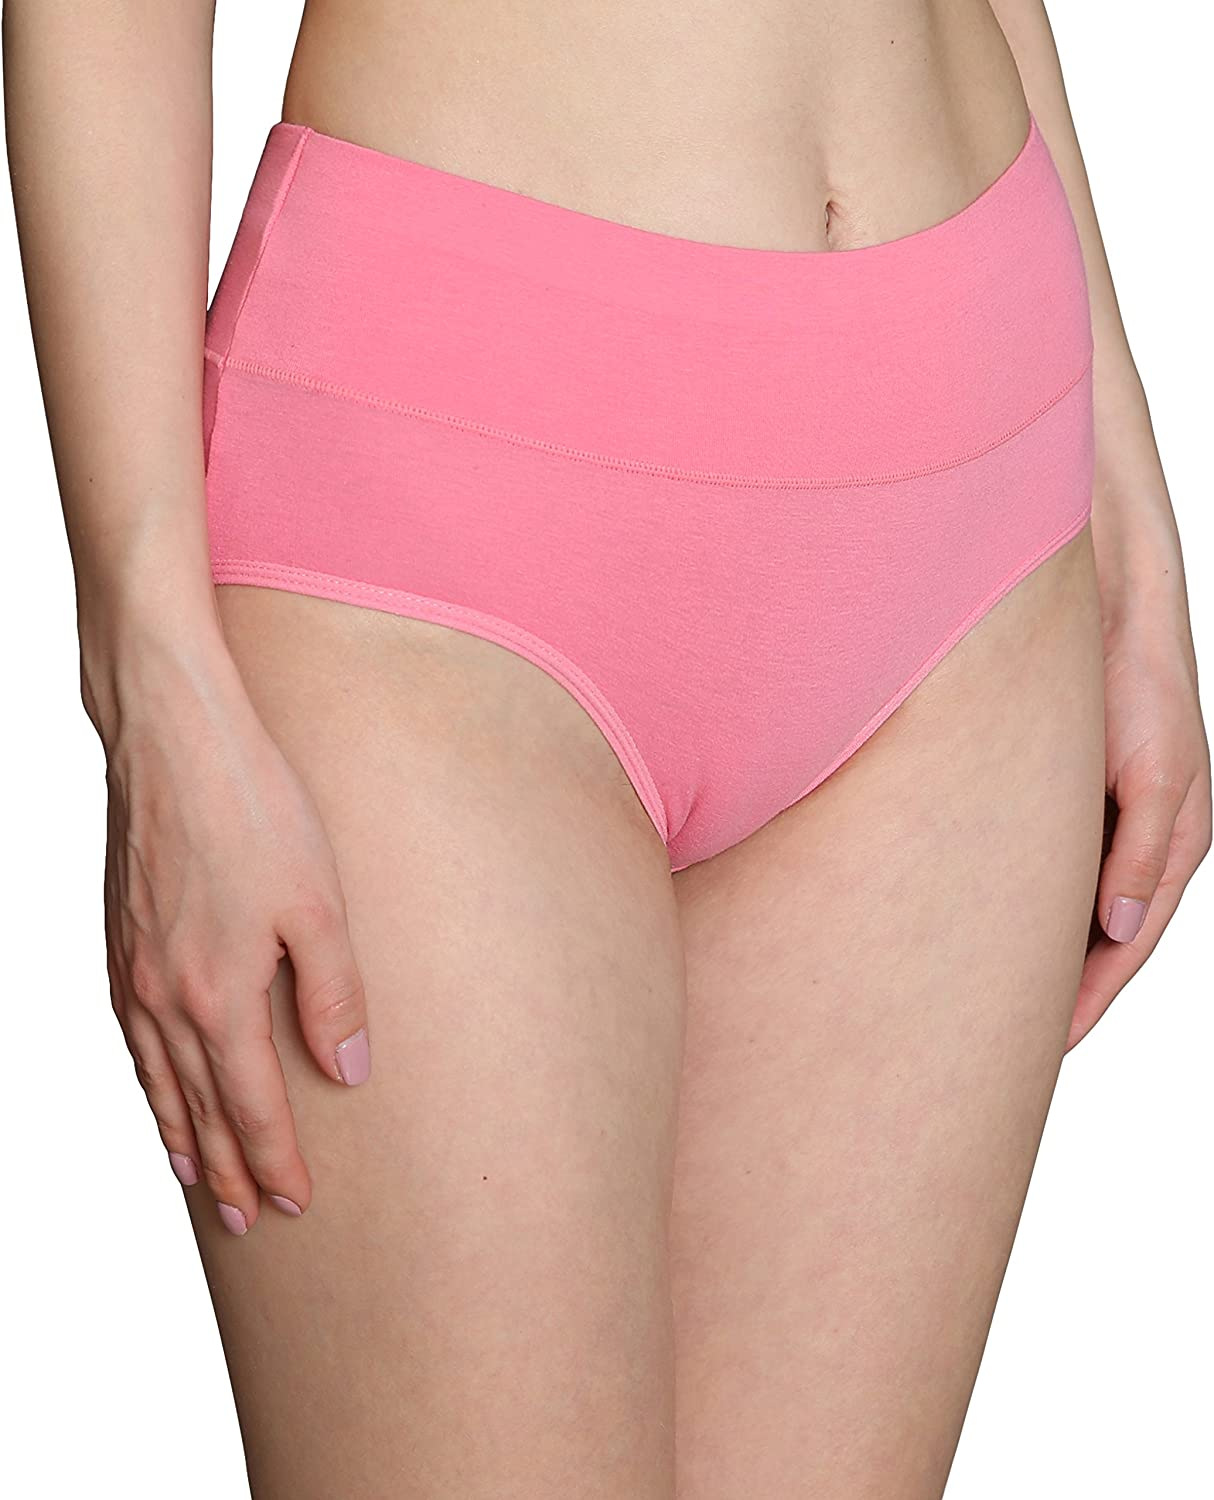 INNERSY Womens High Waisted Underwear Cotton Panties Regular /& Plus Size Multipack